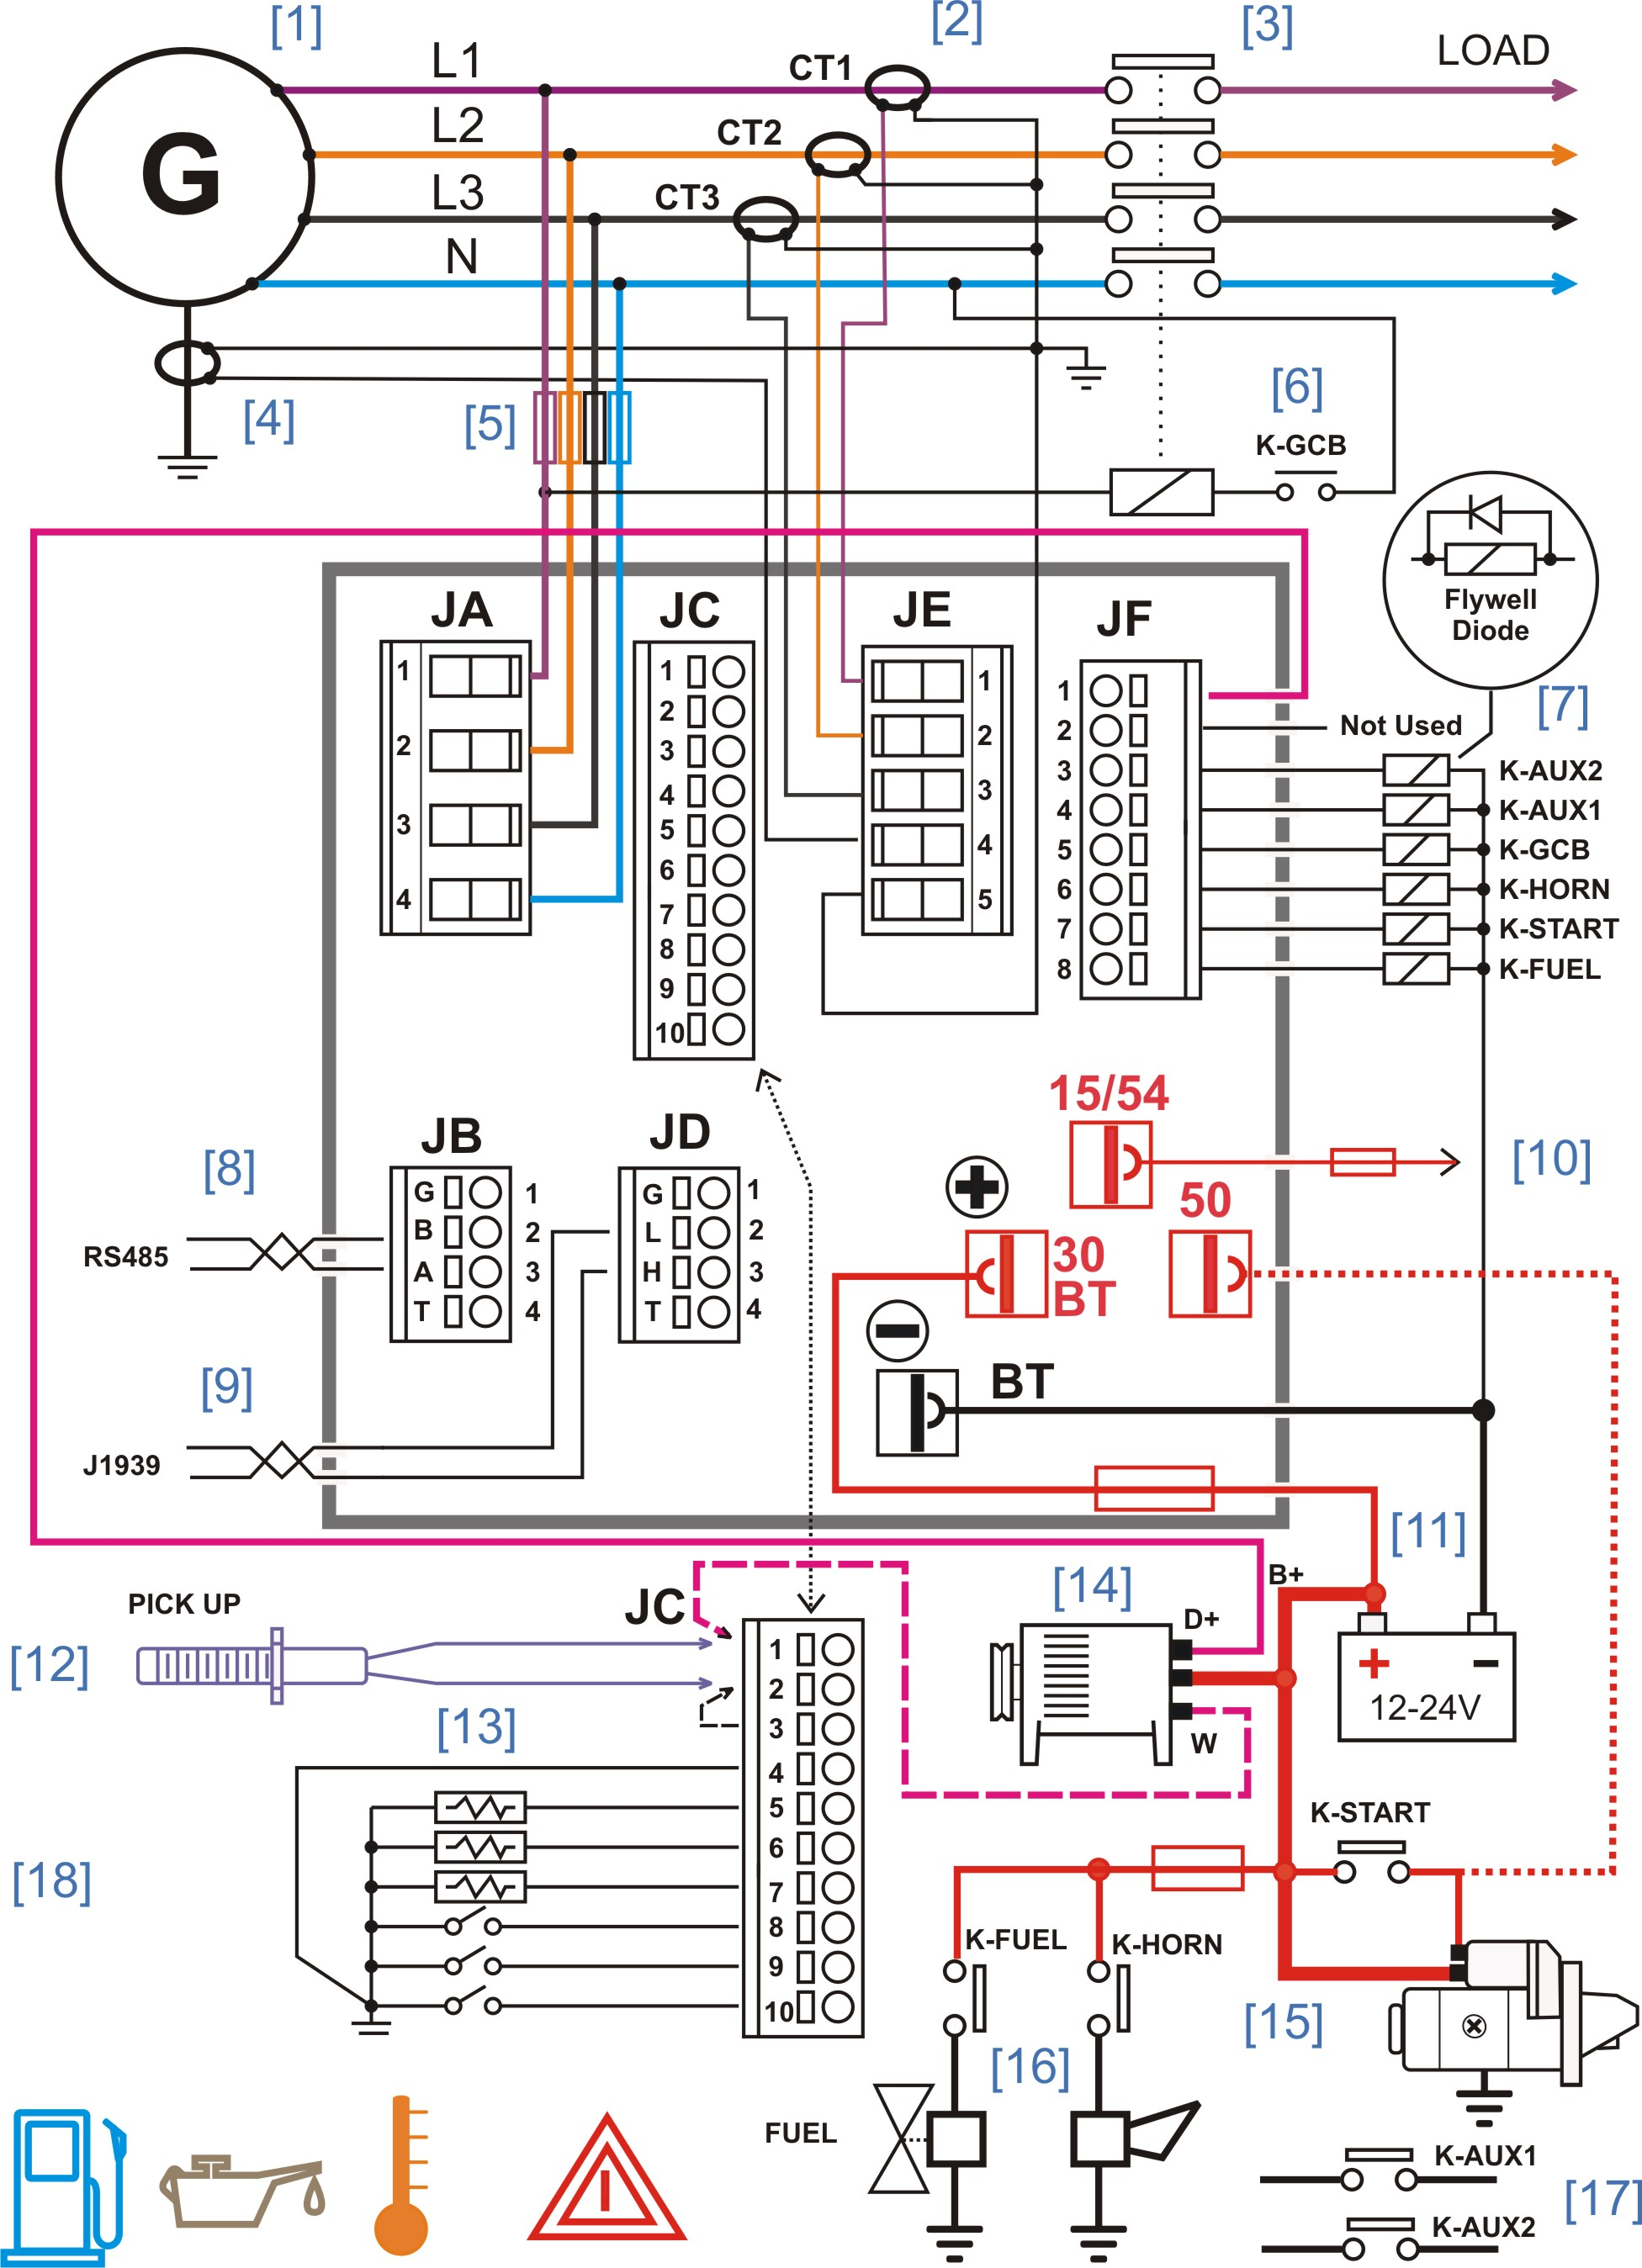 Generator Controller Wiring Diagram generator controller wiring diagram genset controller controller wire diagram for 3246e2 lift at crackthecode.co